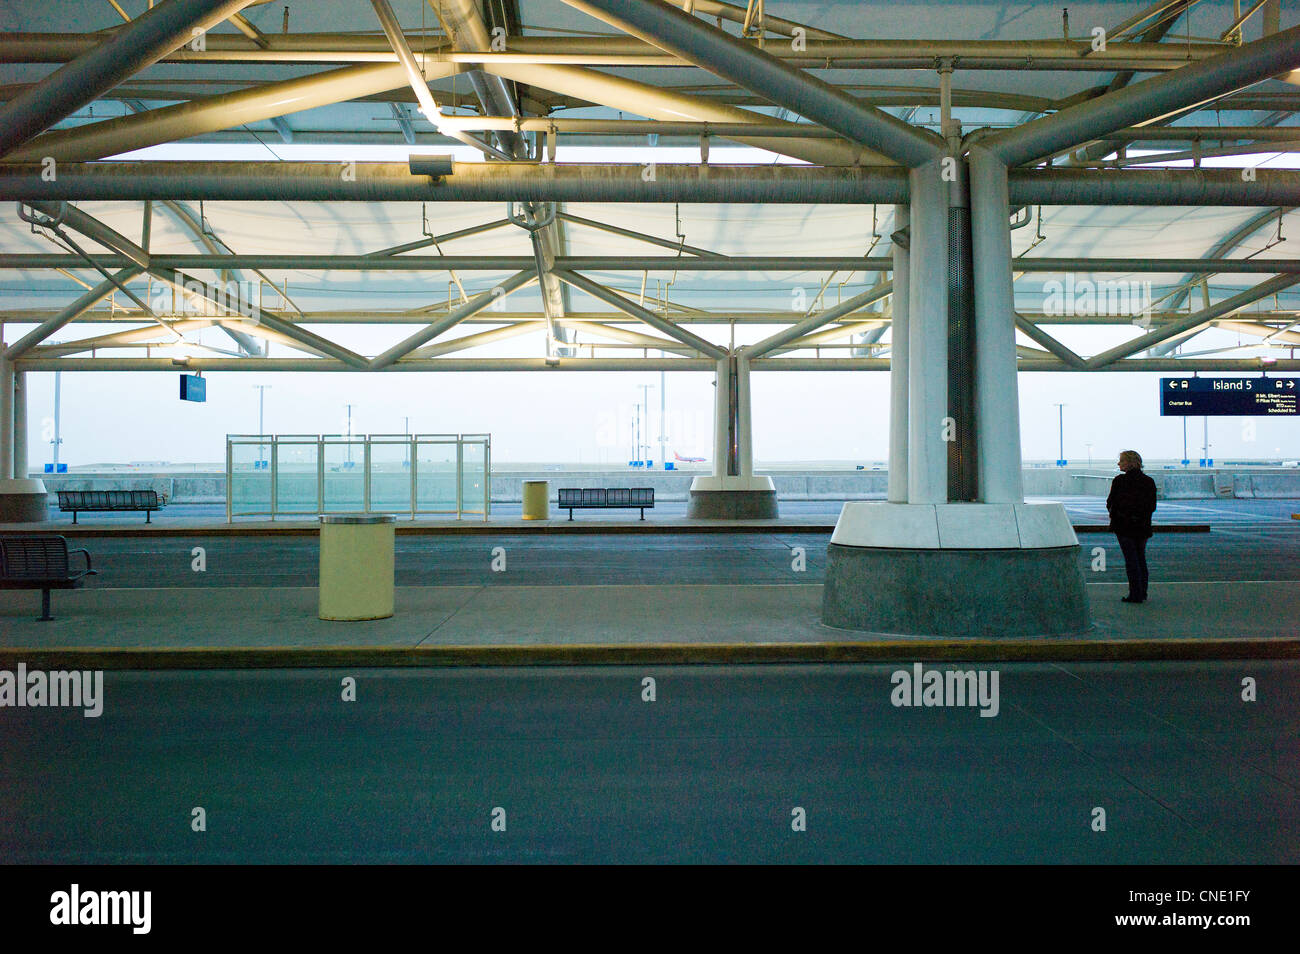 Lone woman waiting for a ride at the terminal at the Denver International Airport, Denver, Colorado, USA - Stock Image